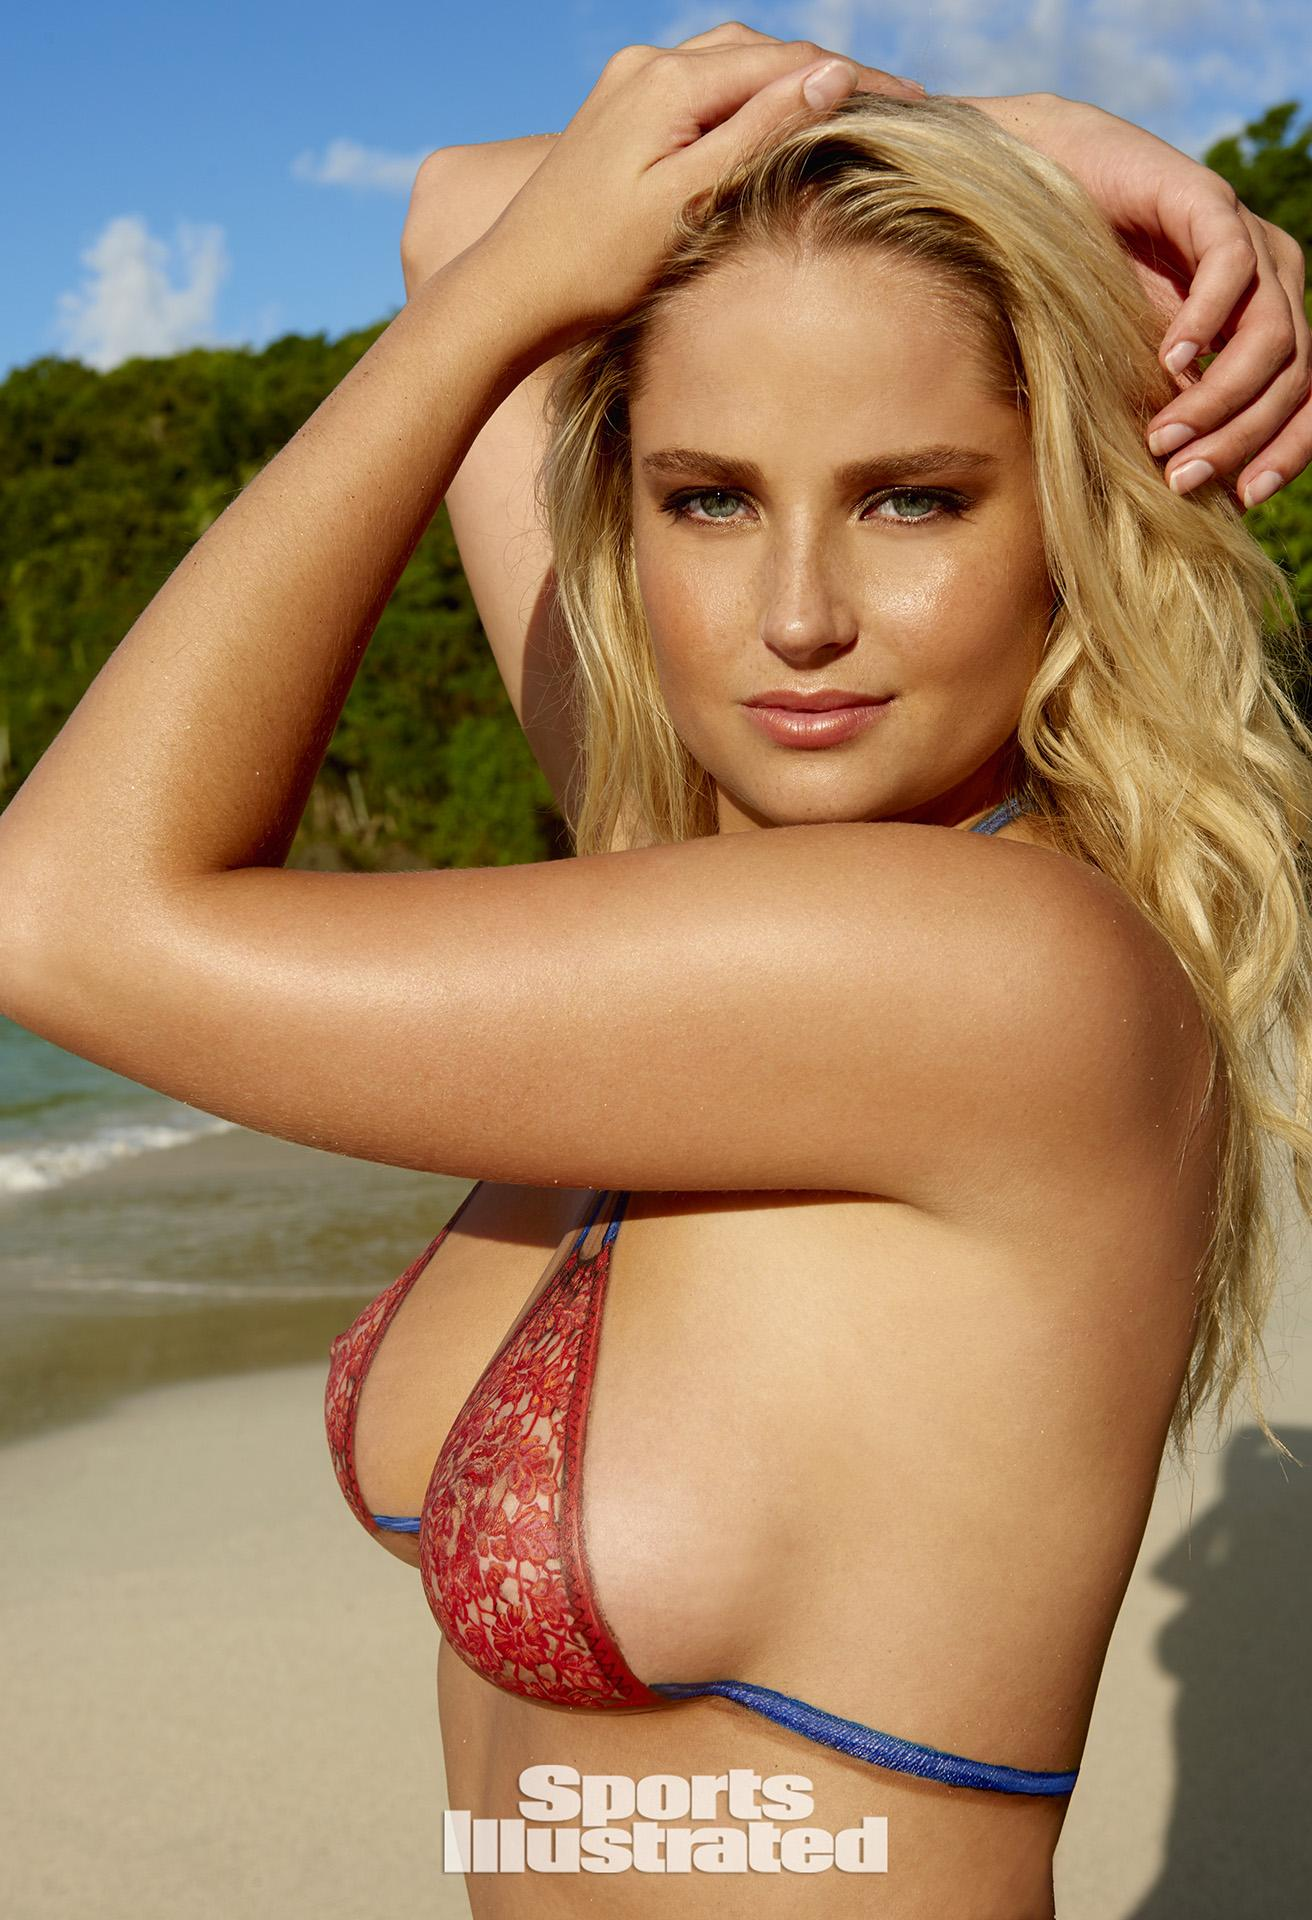 morton swimsuit body paint photos sports illustrated swimsuit 2015